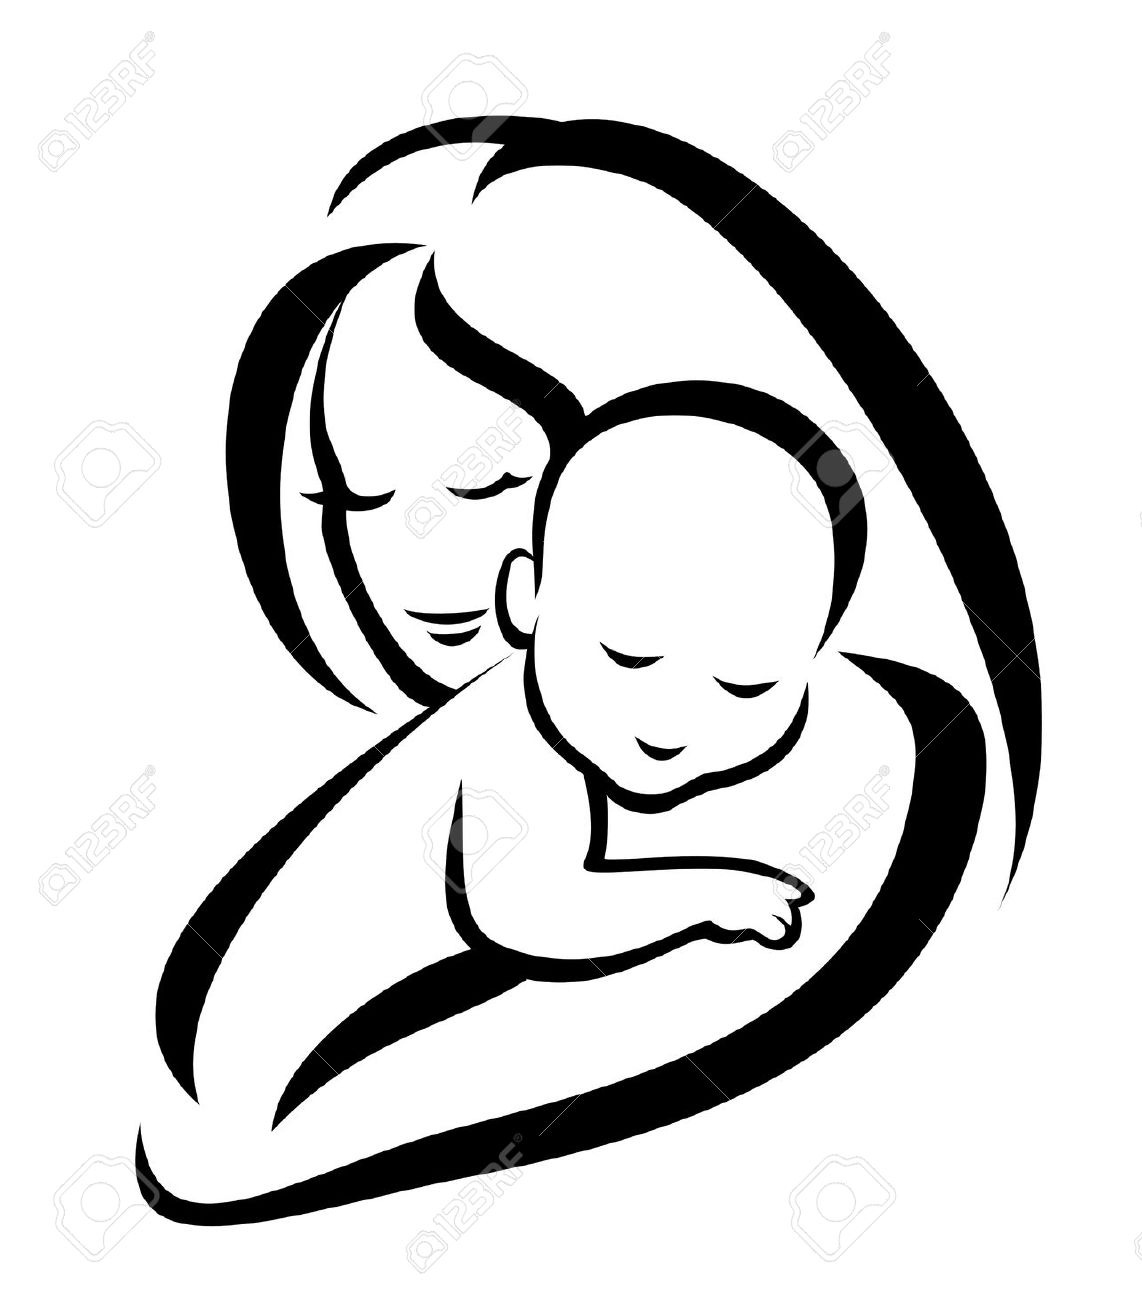 Library of free image free library mother child png files.